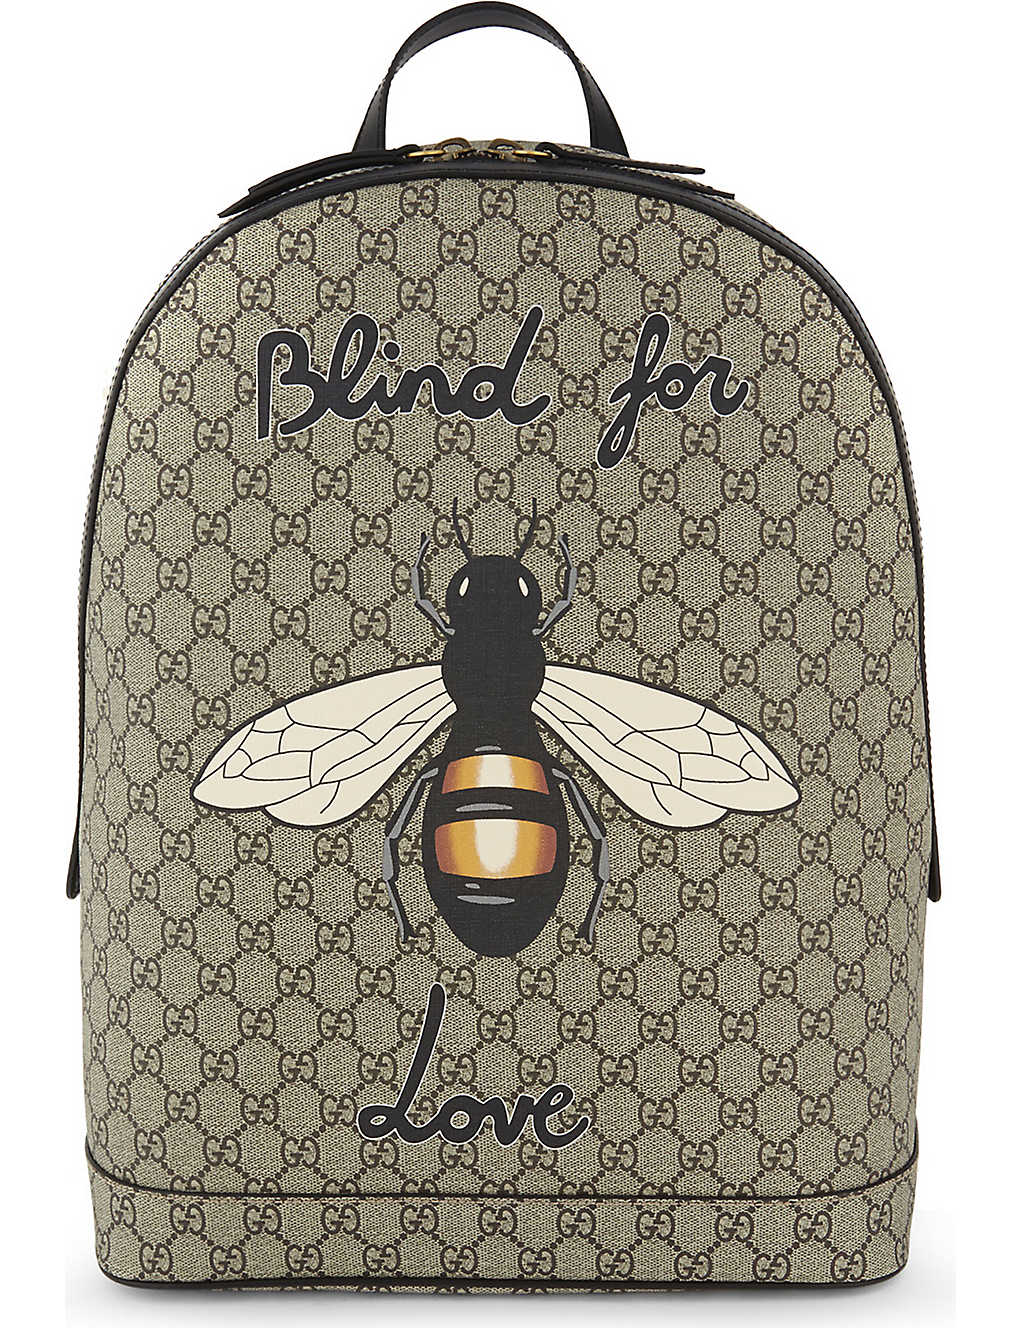 GUCCI - Bee print GG Supreme backpack  db4d2e9b9c55e